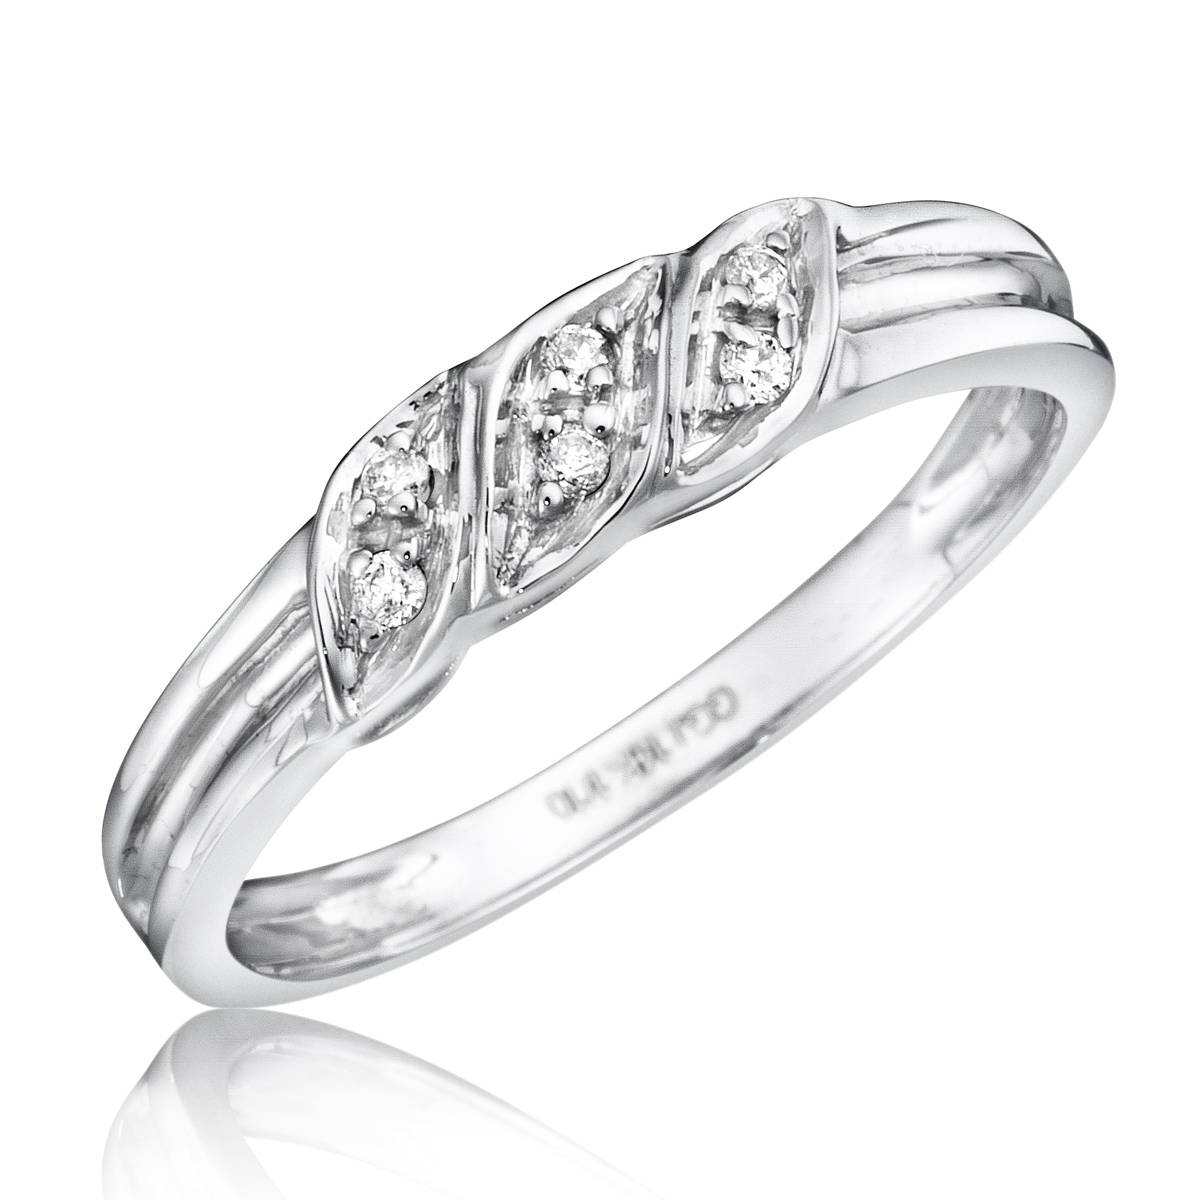 1/4 Carat Diamond Trio Wedding Ring Set 14K White Gold Intended For 14K White Gold Wedding Rings (View 4 of 15)